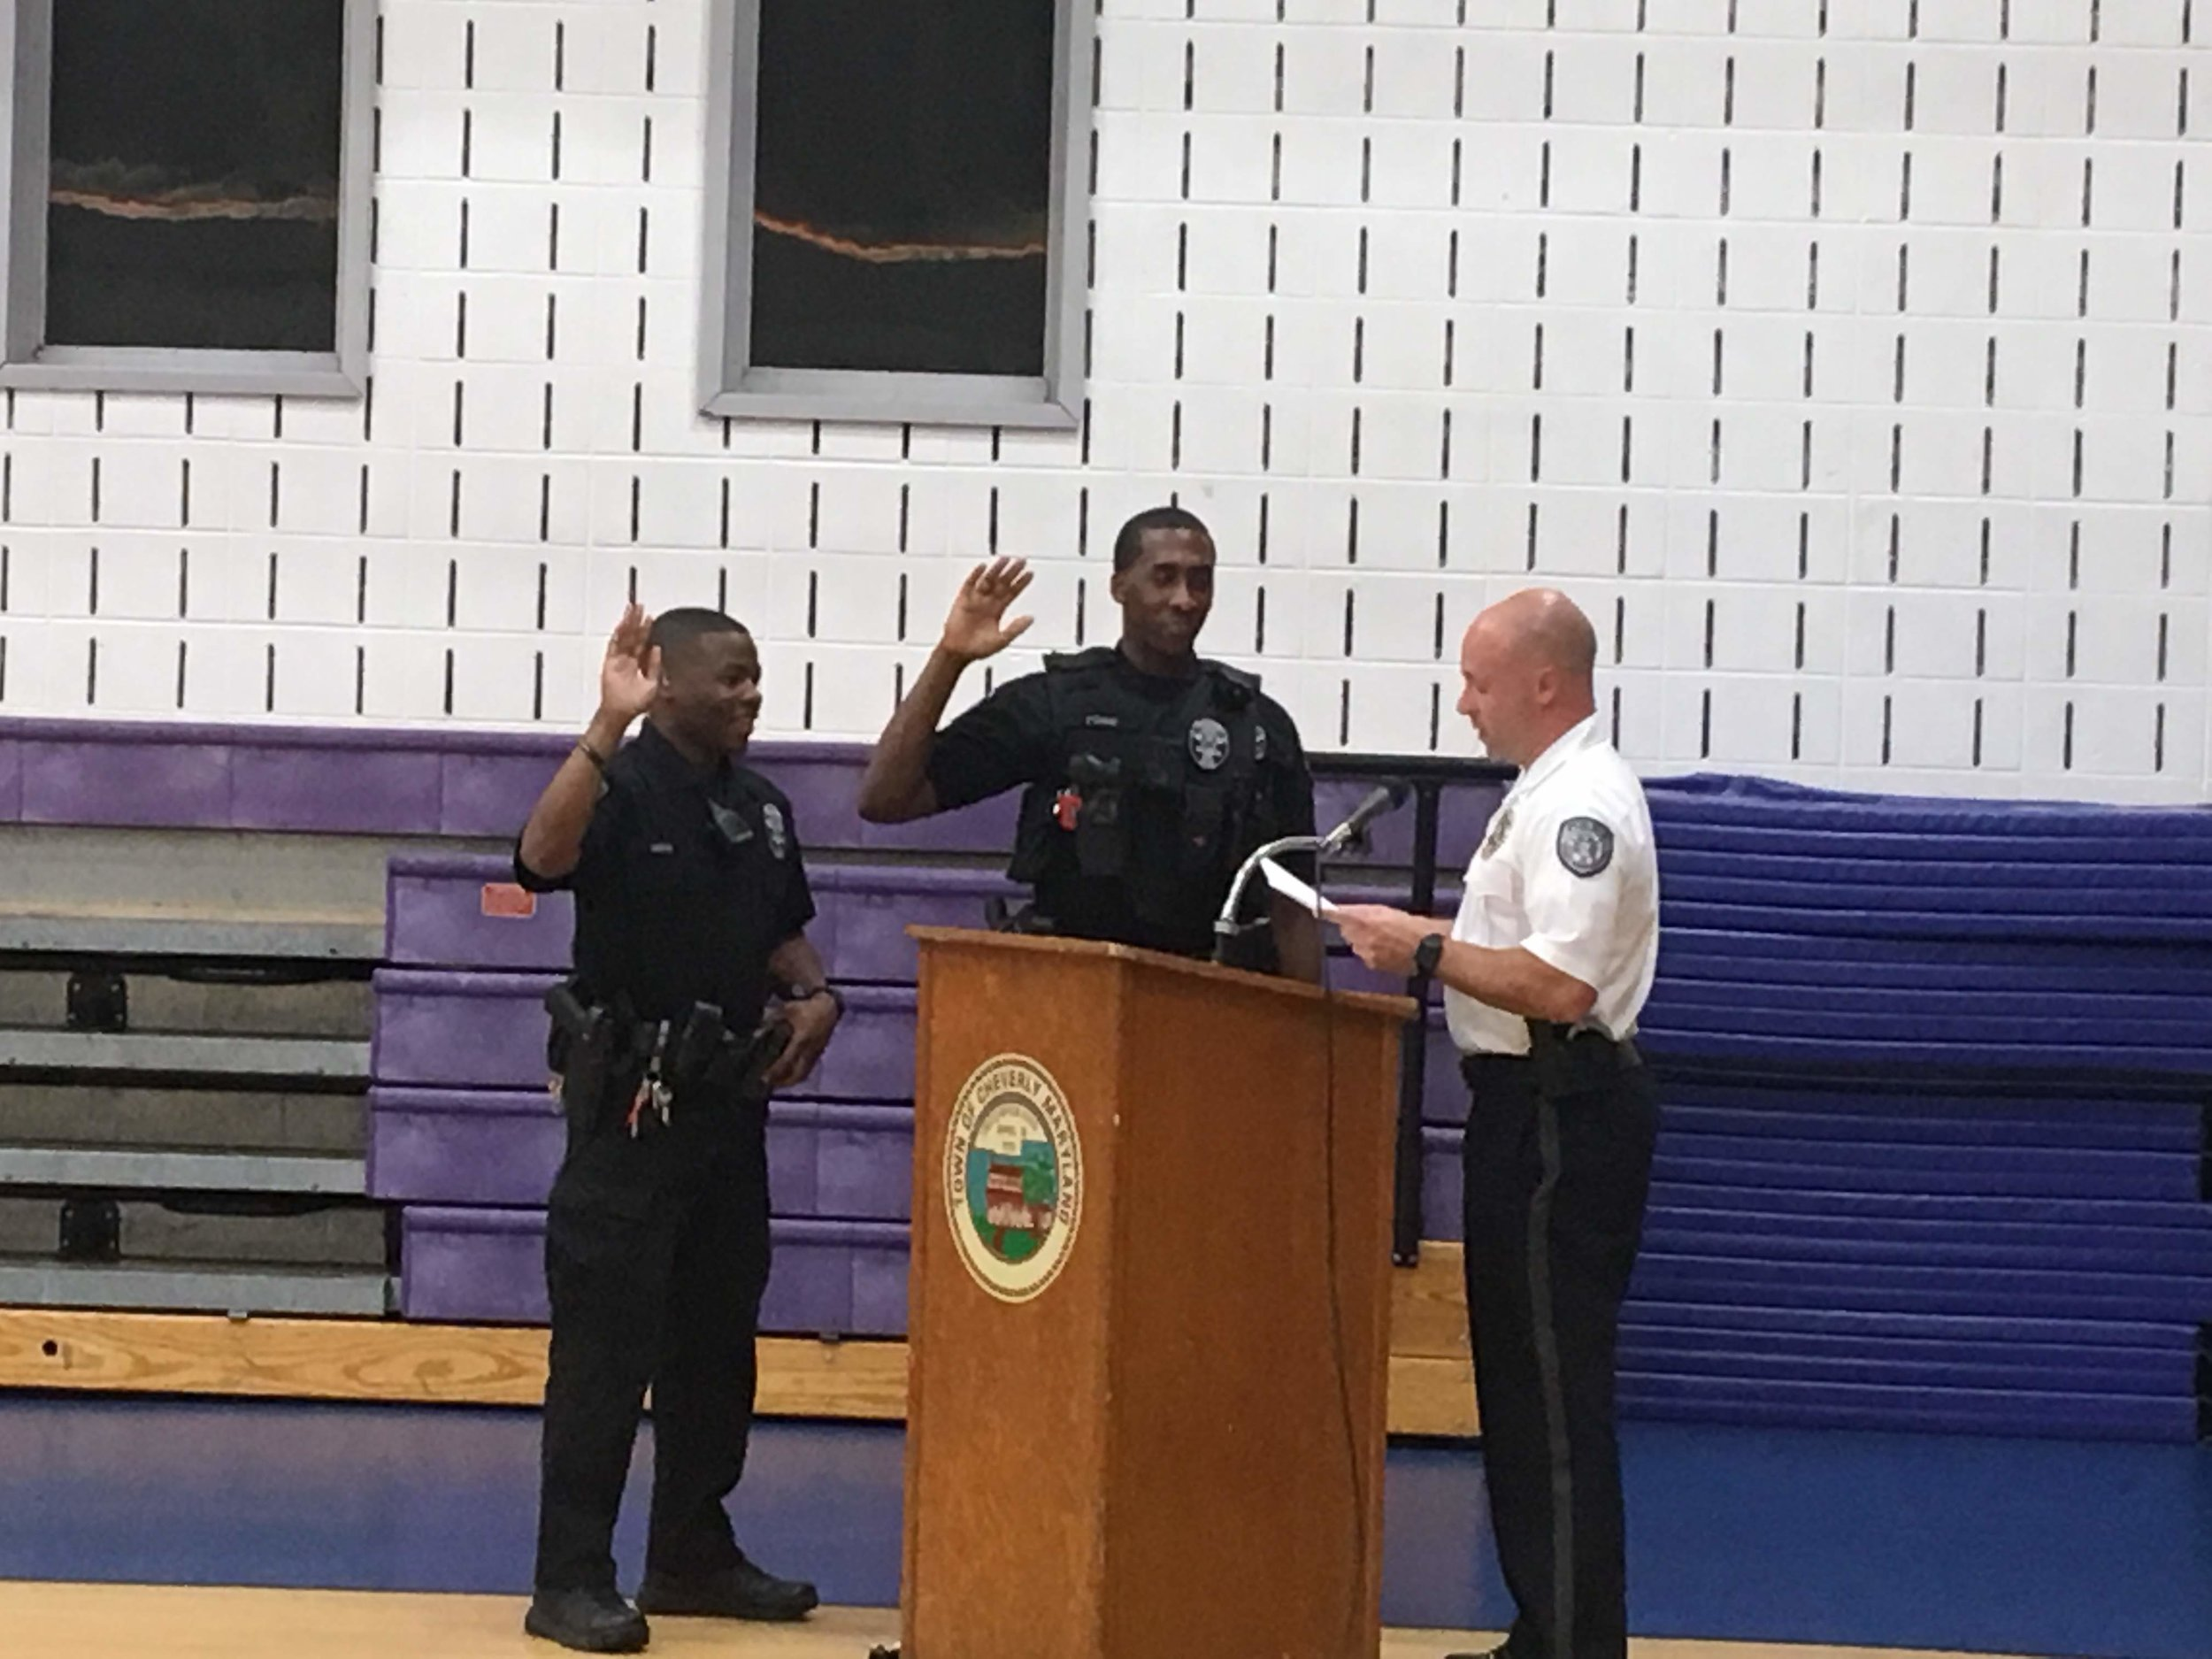 Congrats to Officers Ford and Keene who were sworn in at our meeting last week!